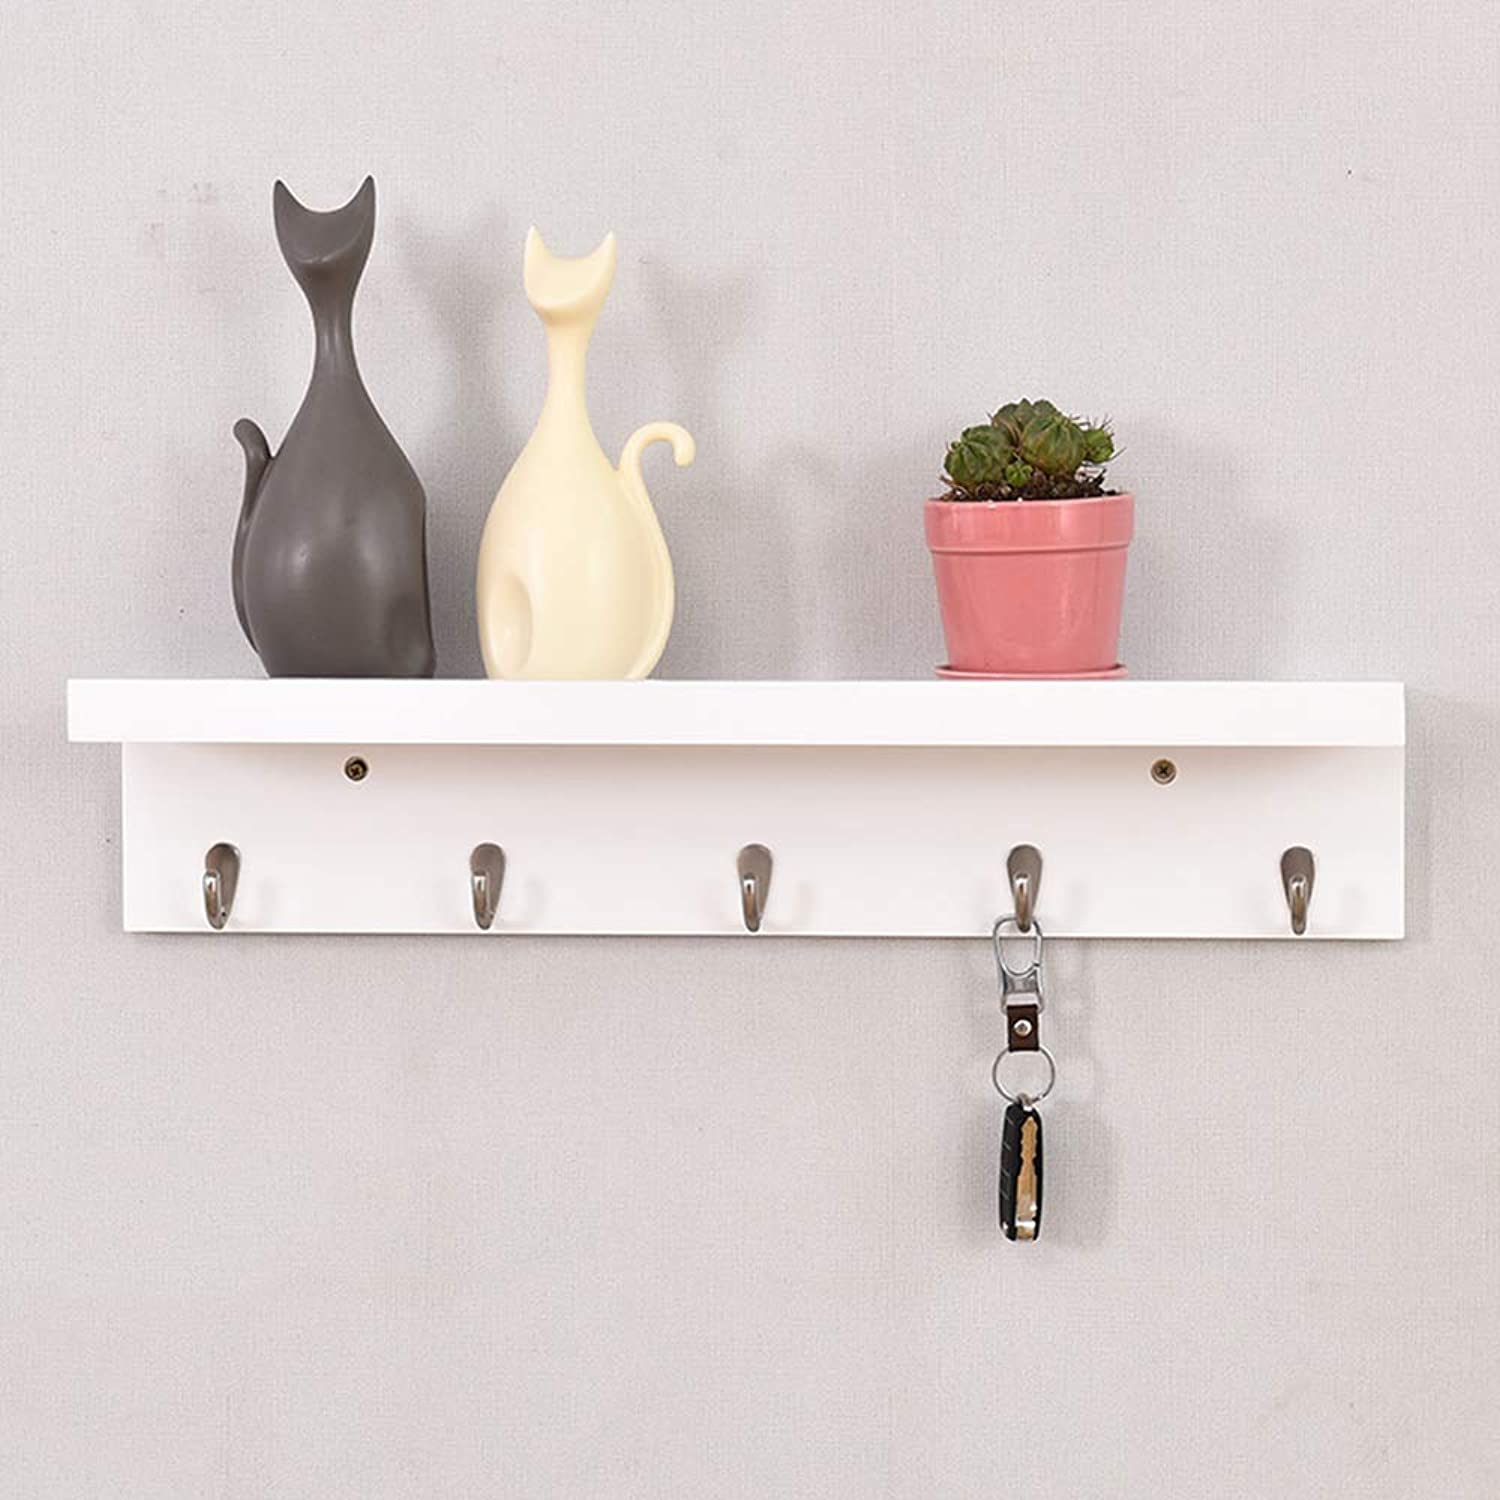 HHXD Fashion Wall Mounted Entrance Storage Shelf Solid Wood Bedroom Coat rack Strong bearing capacity Space Saver Strong Durable Creative C   61  15cm